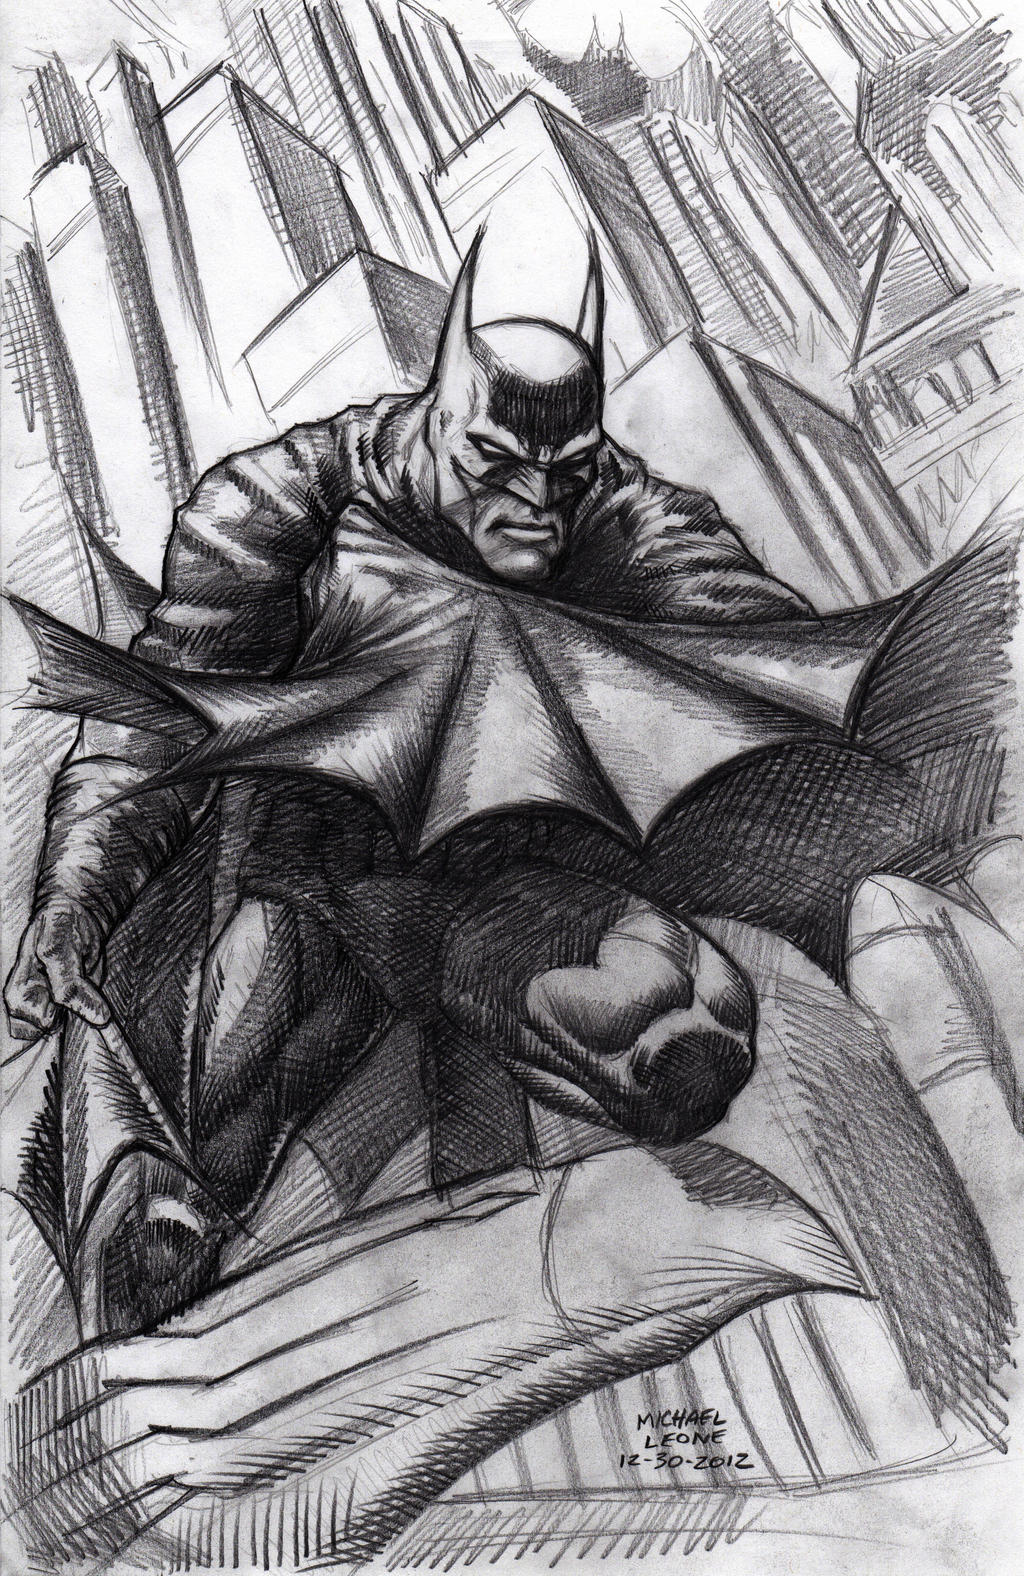 Batman after Finch 12-30-2012 by myconius